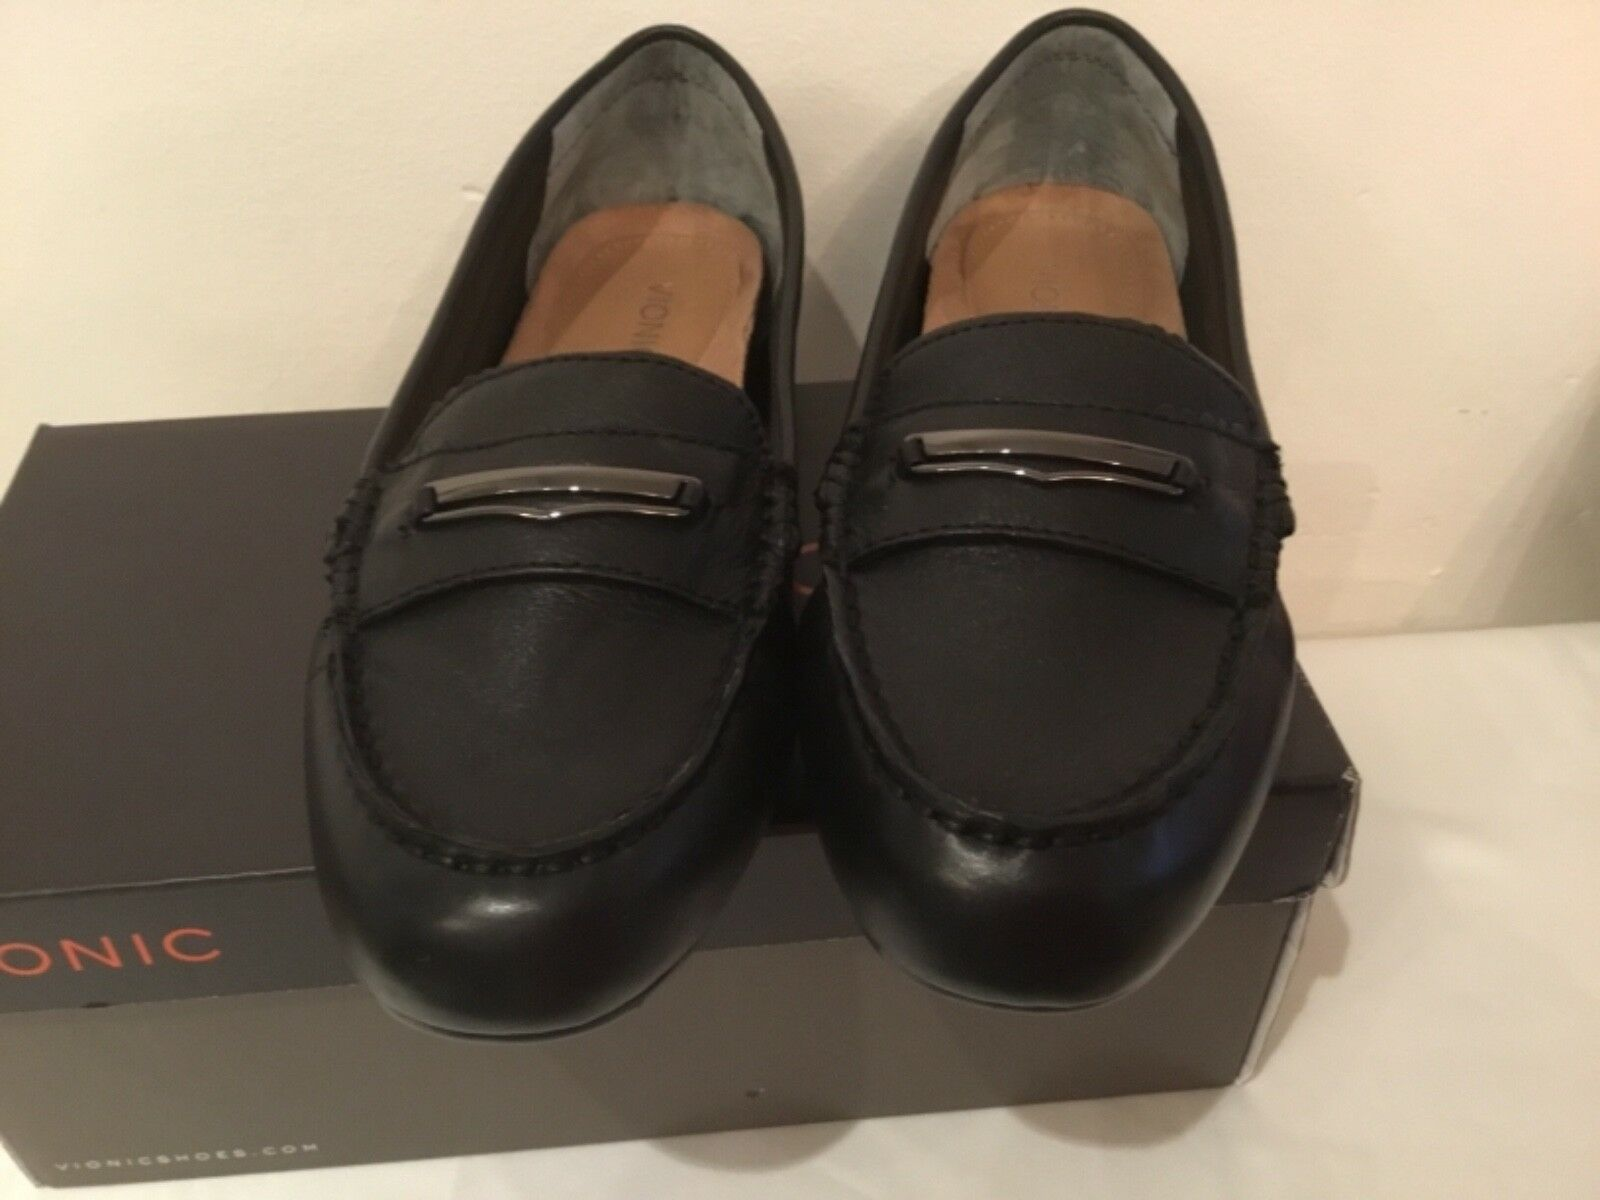 Vionic Orthotic Honor Honor Honor Ashby Leather Loafer w  FMT Technology- choose a colour f863cc